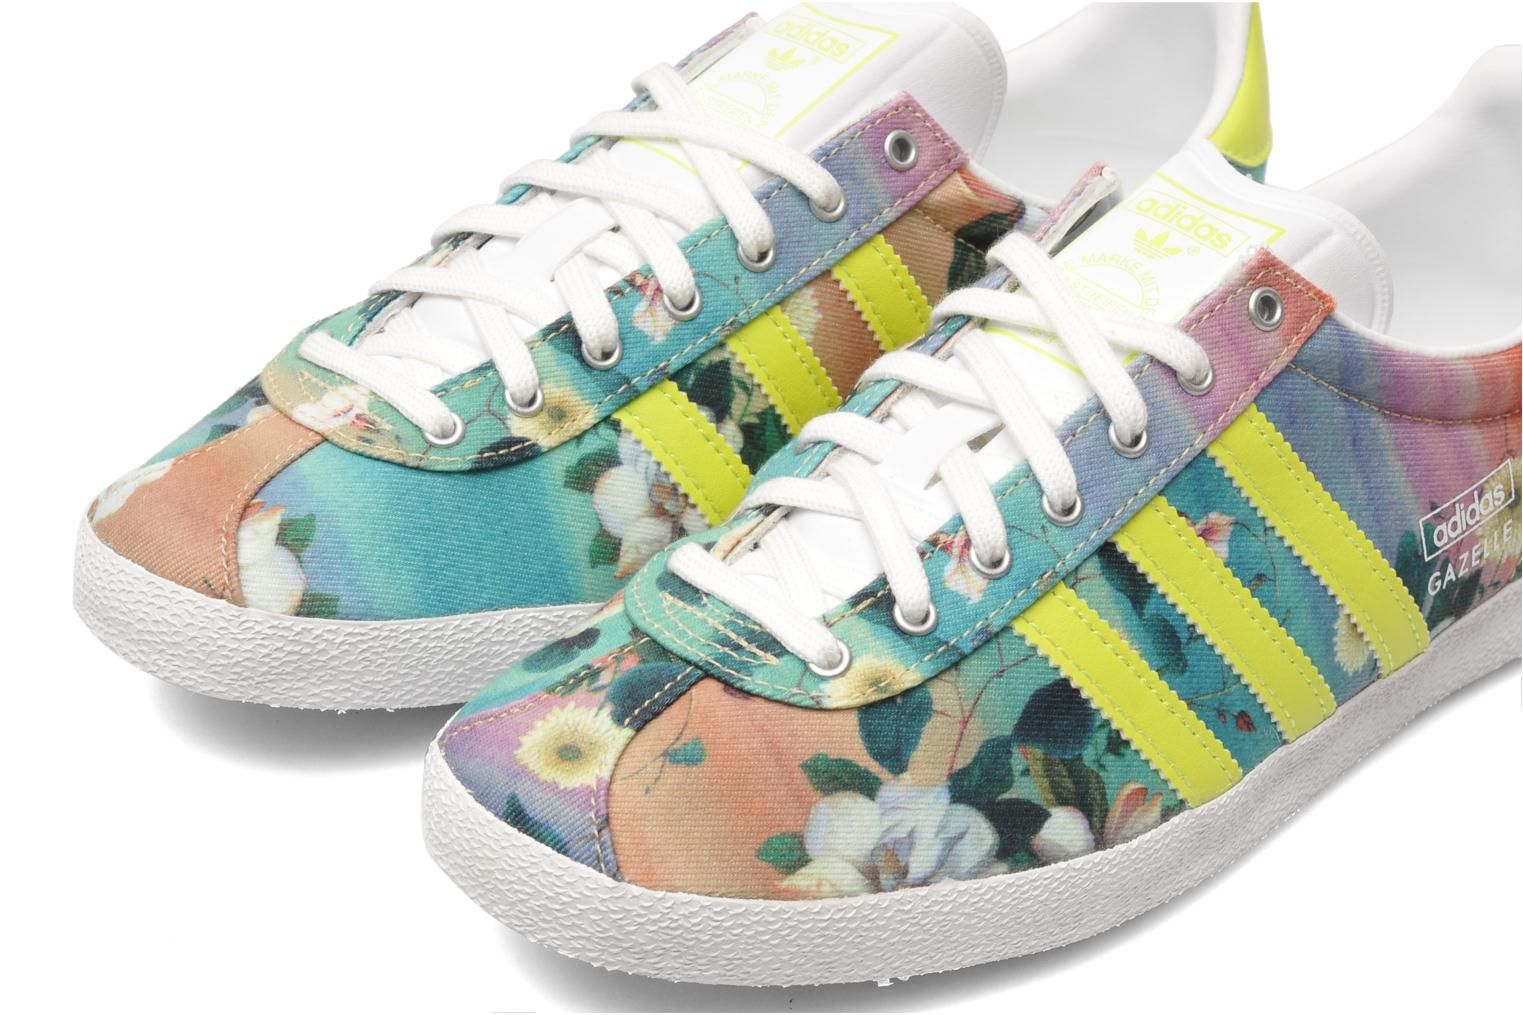 Gazelle Og Wc Farm W Adidas Originals (Multicolore) : livraison gratuite de vos Baskets